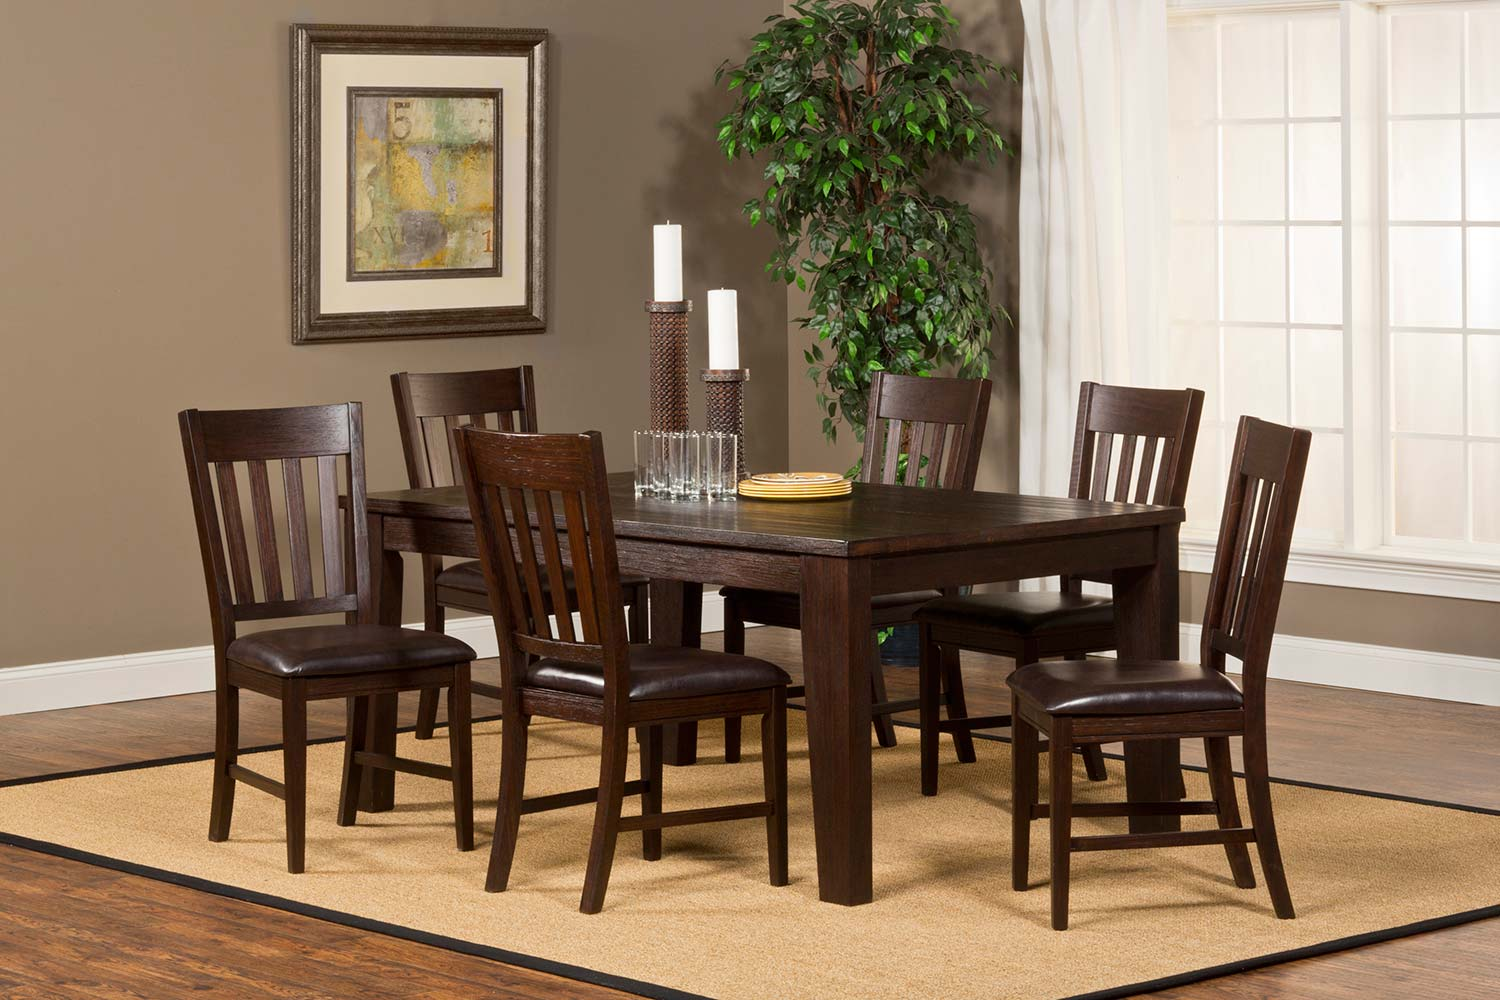 Hillsdale Brooklawn 7-Piece Dining Set - Smoke Brown/Dark Brown Vinyl